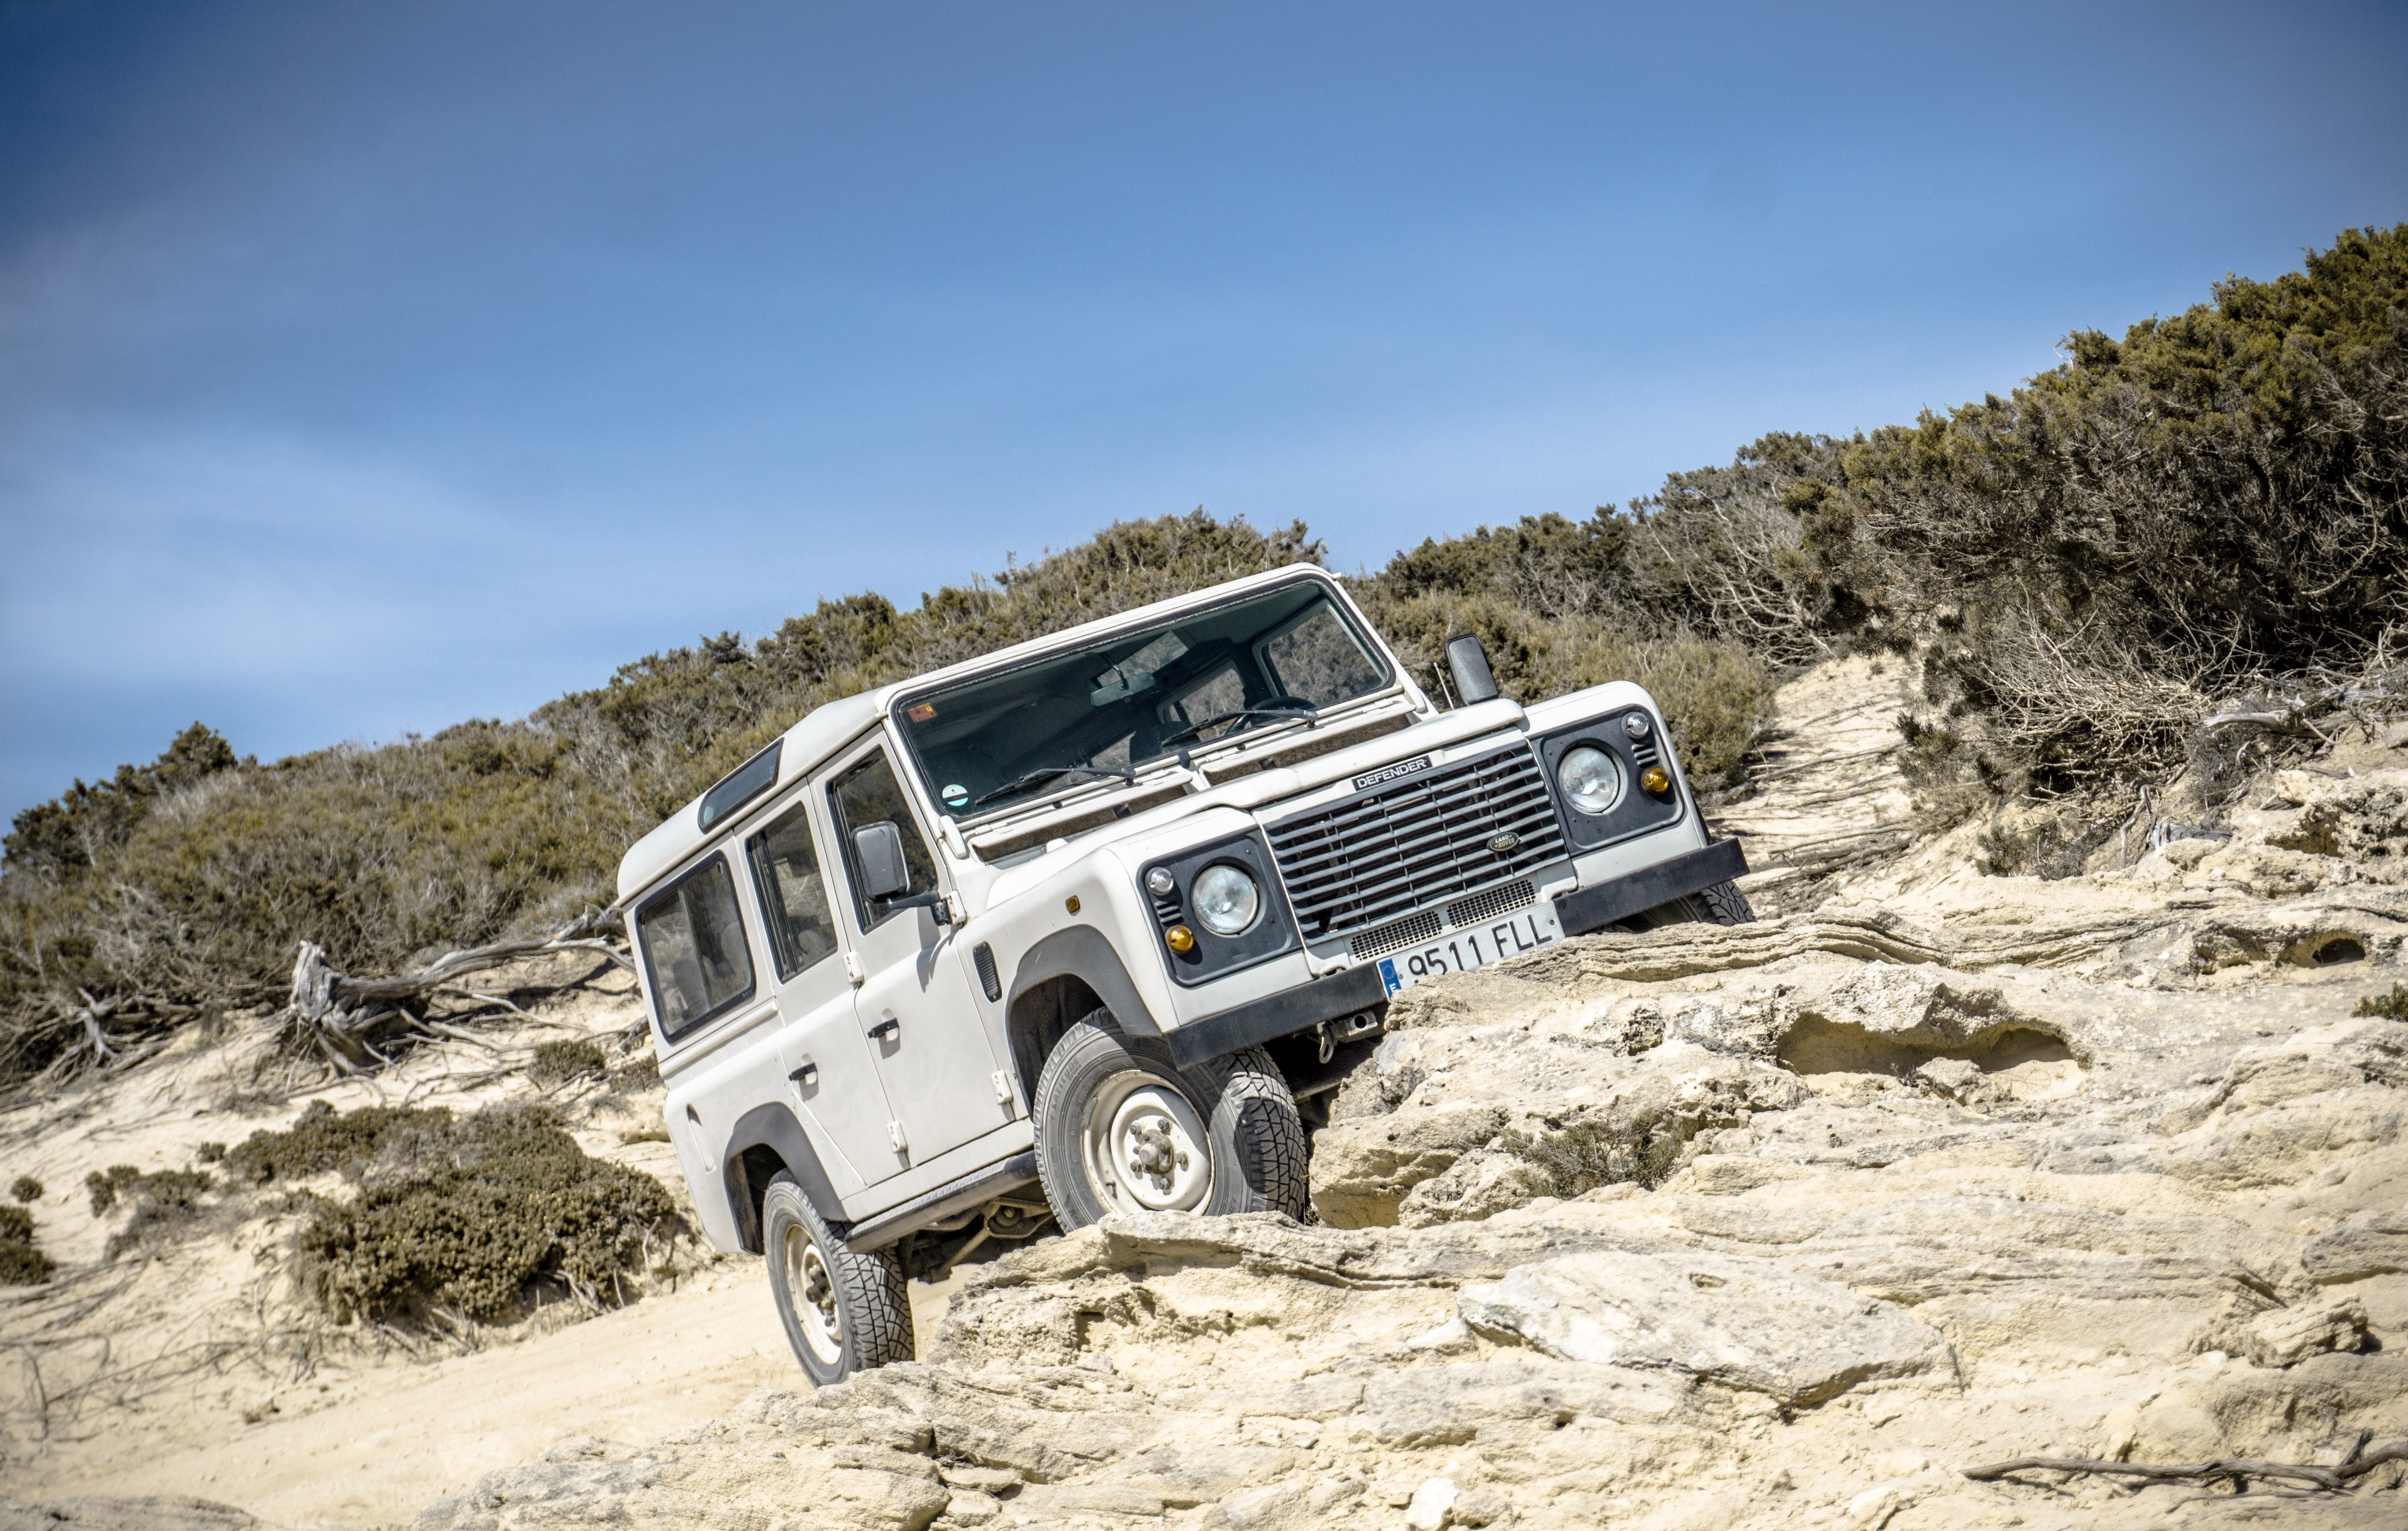 Free stock photo of car, defender, offroad